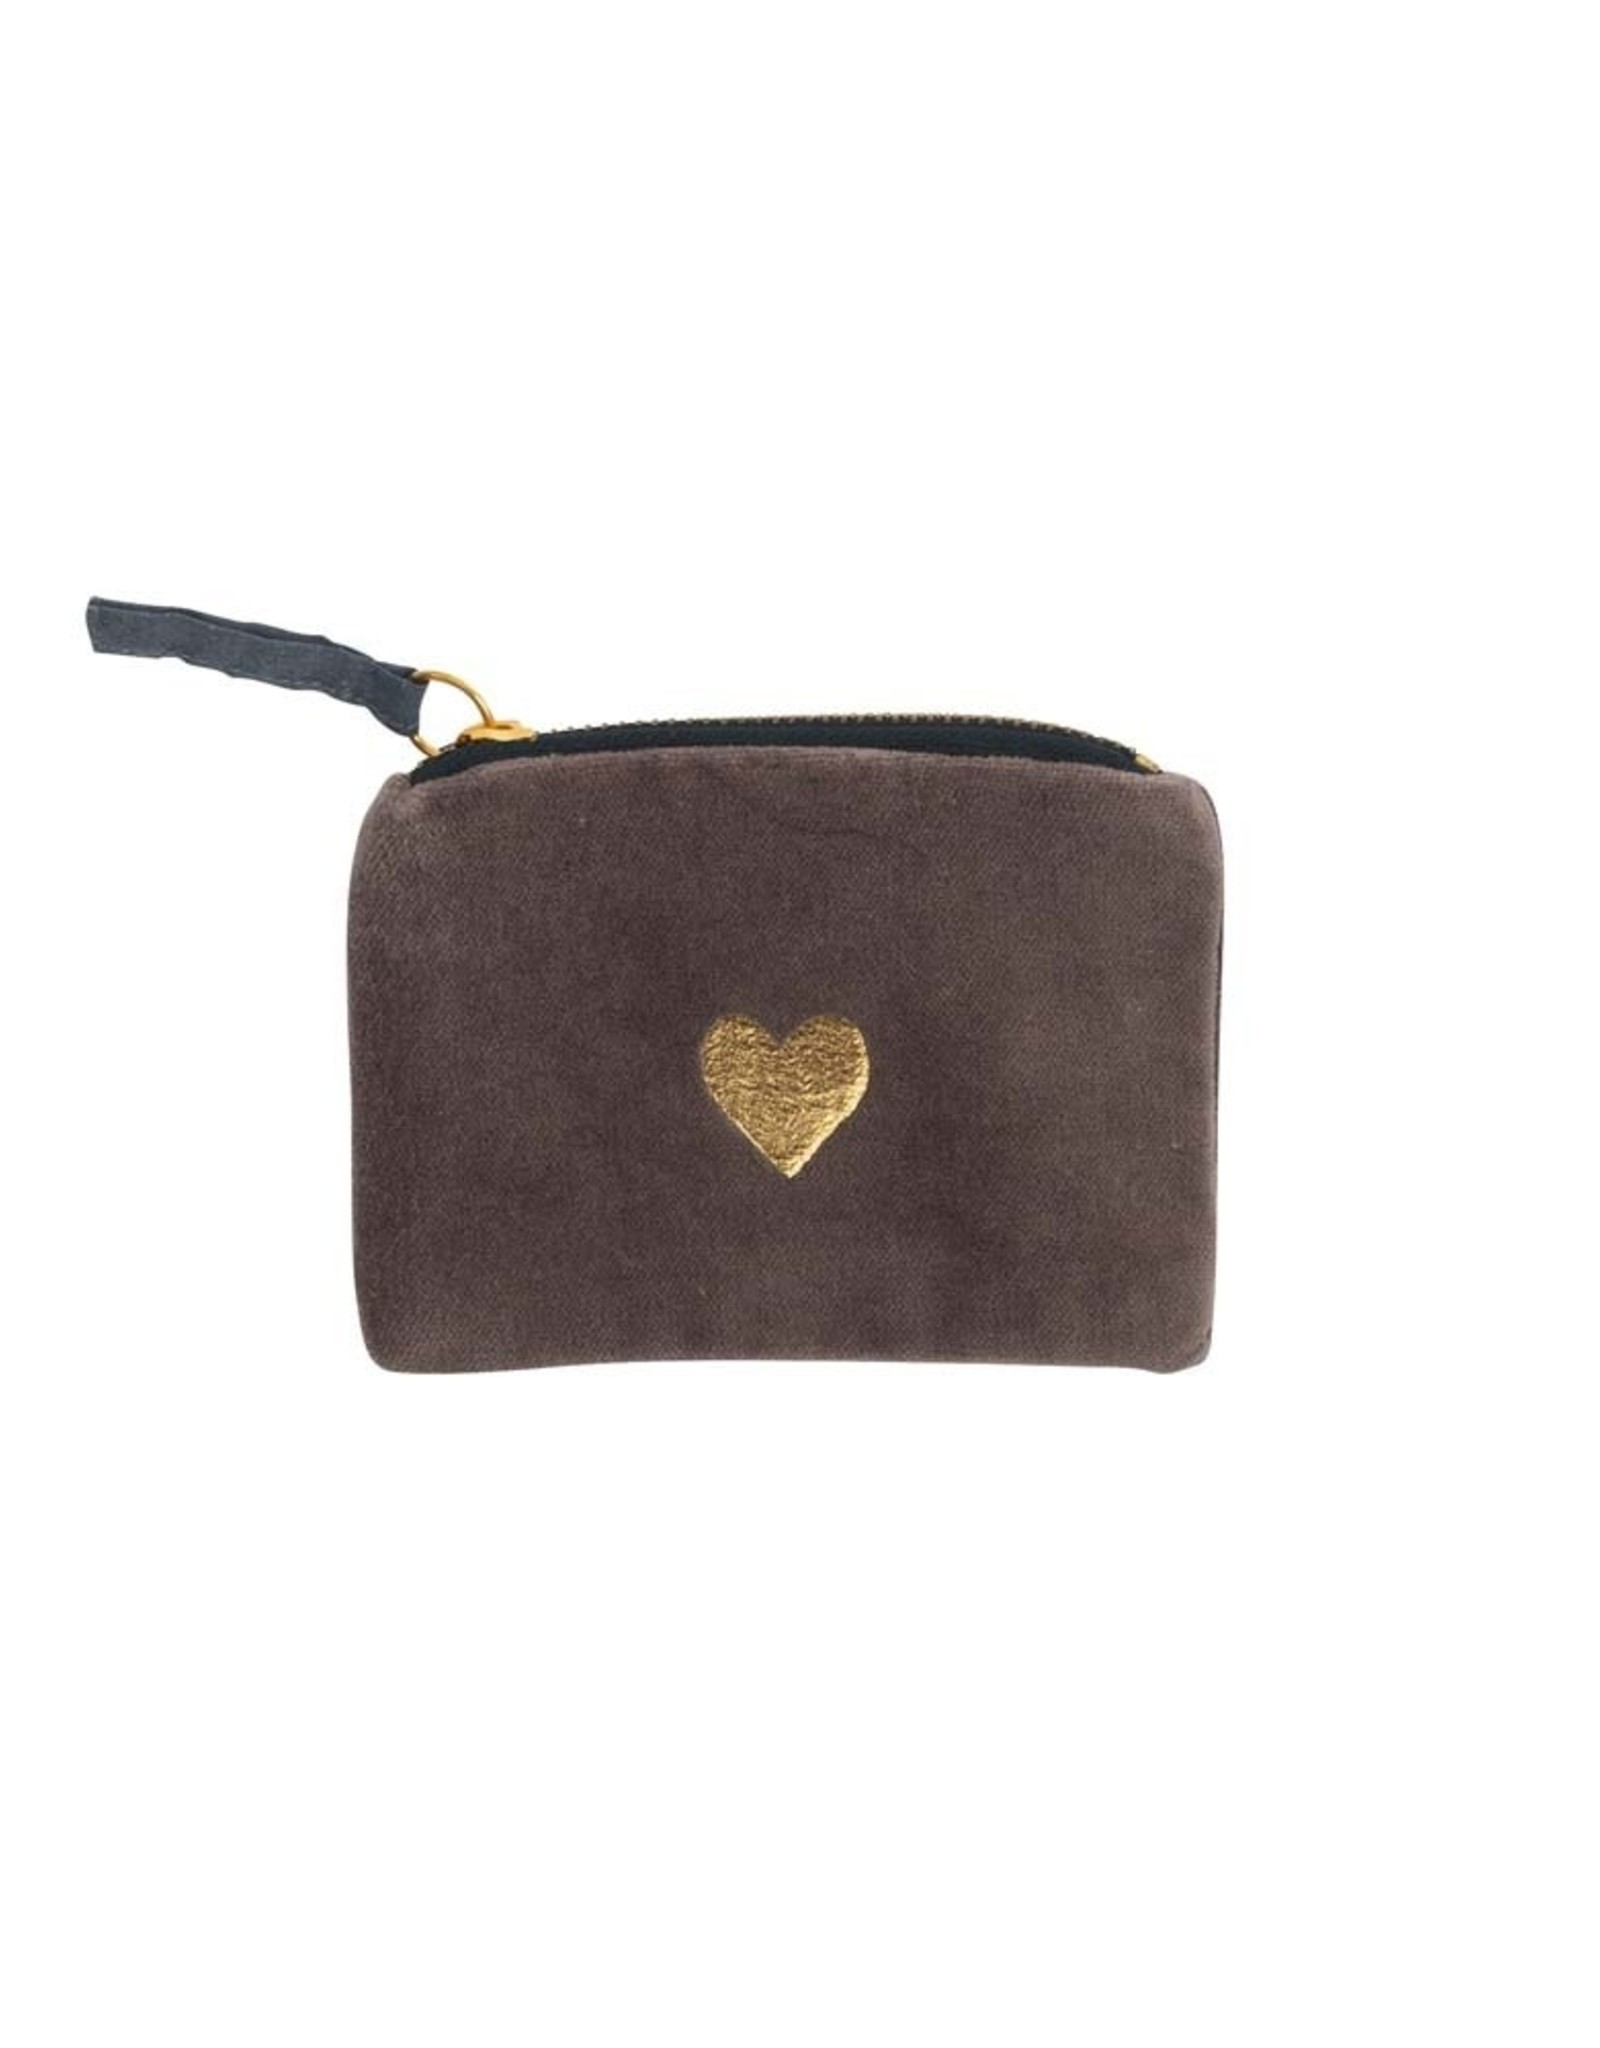 Artebene Wallet Velvet Heart-brown